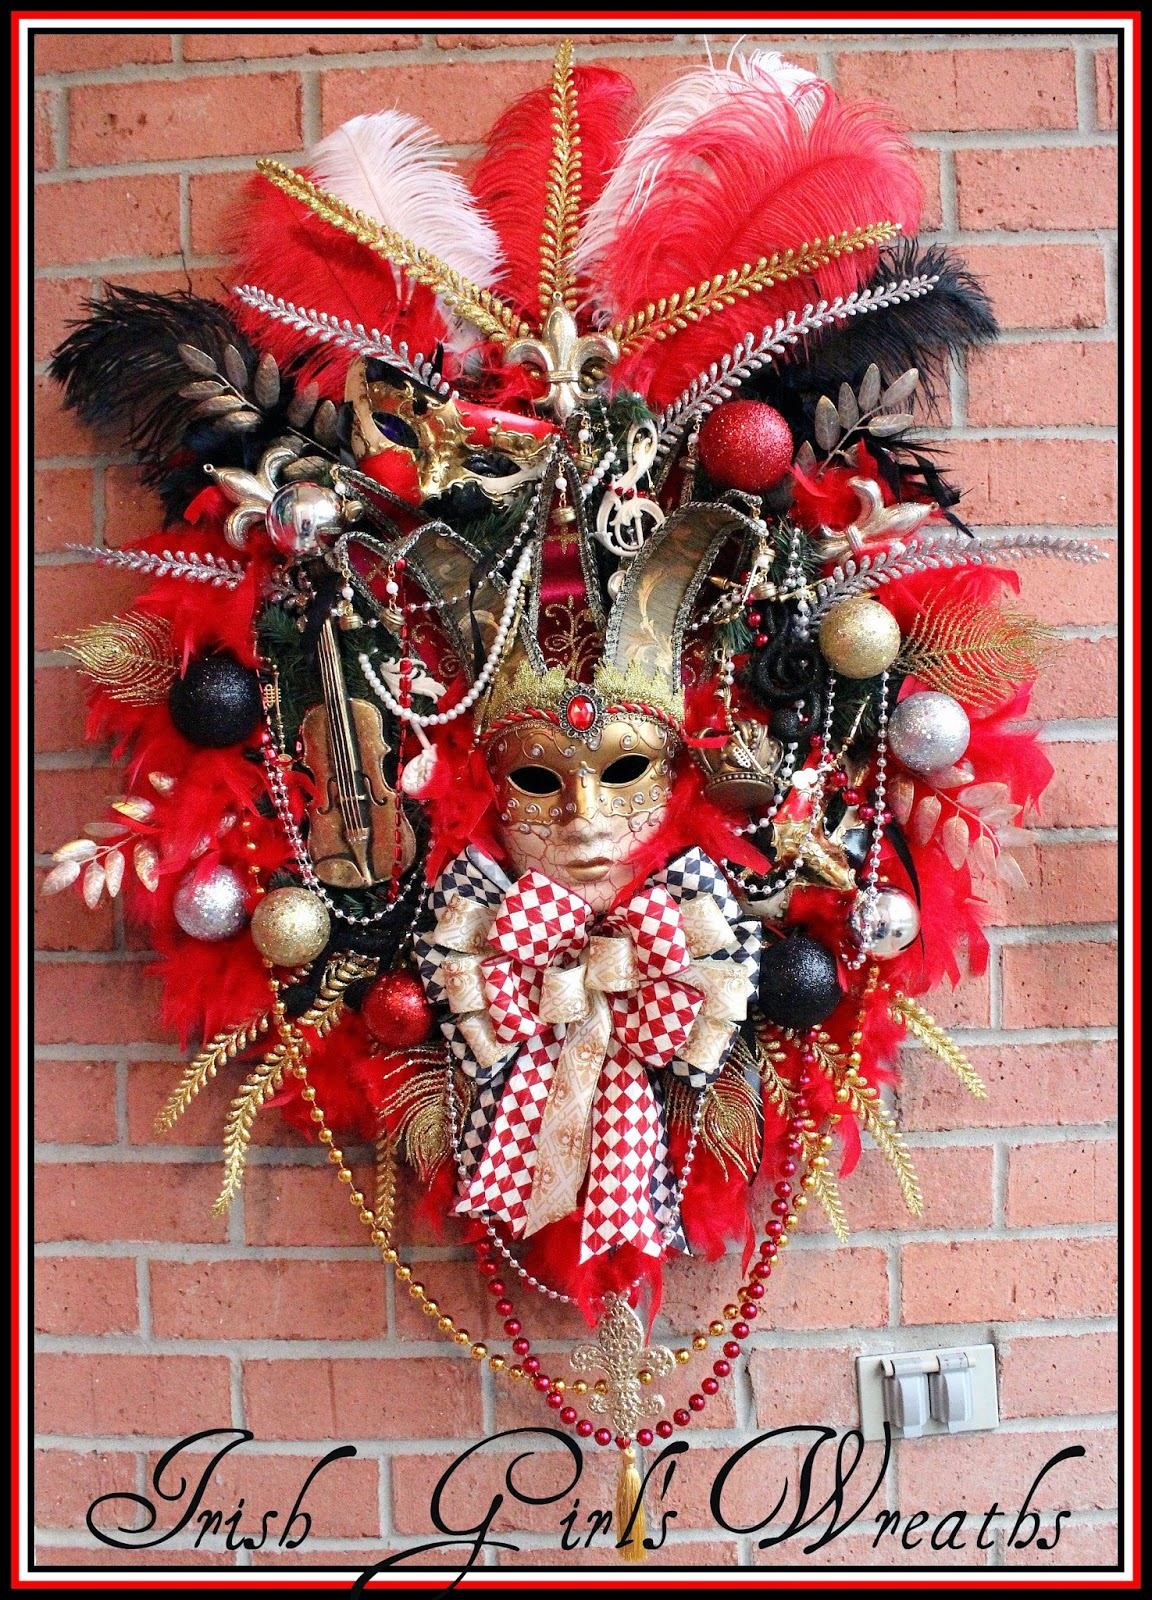 EXTRA Large Red Mardi Gras Venetian Jester Mask Wreath, Violin, Ostrich Plumes, feather boa, music, fleur de Lis, Masquerade, New Orleans